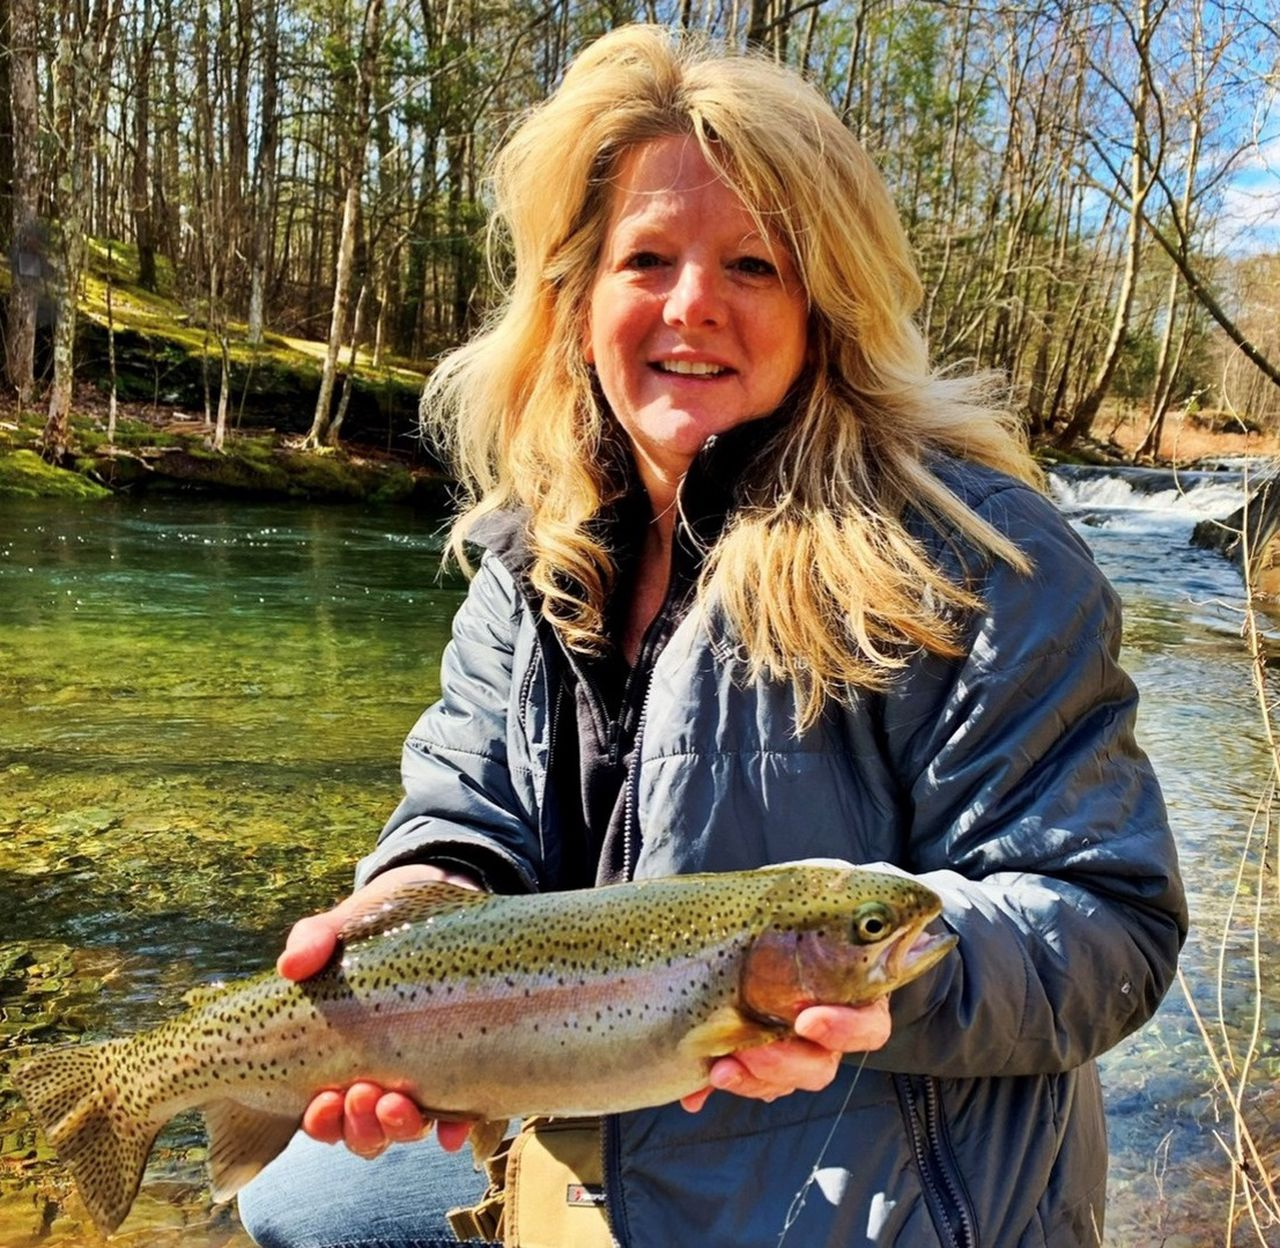 Trout Fishing Season Upstate Ny Anglers Share Photos Of Their Catches Newyorkupstate Com